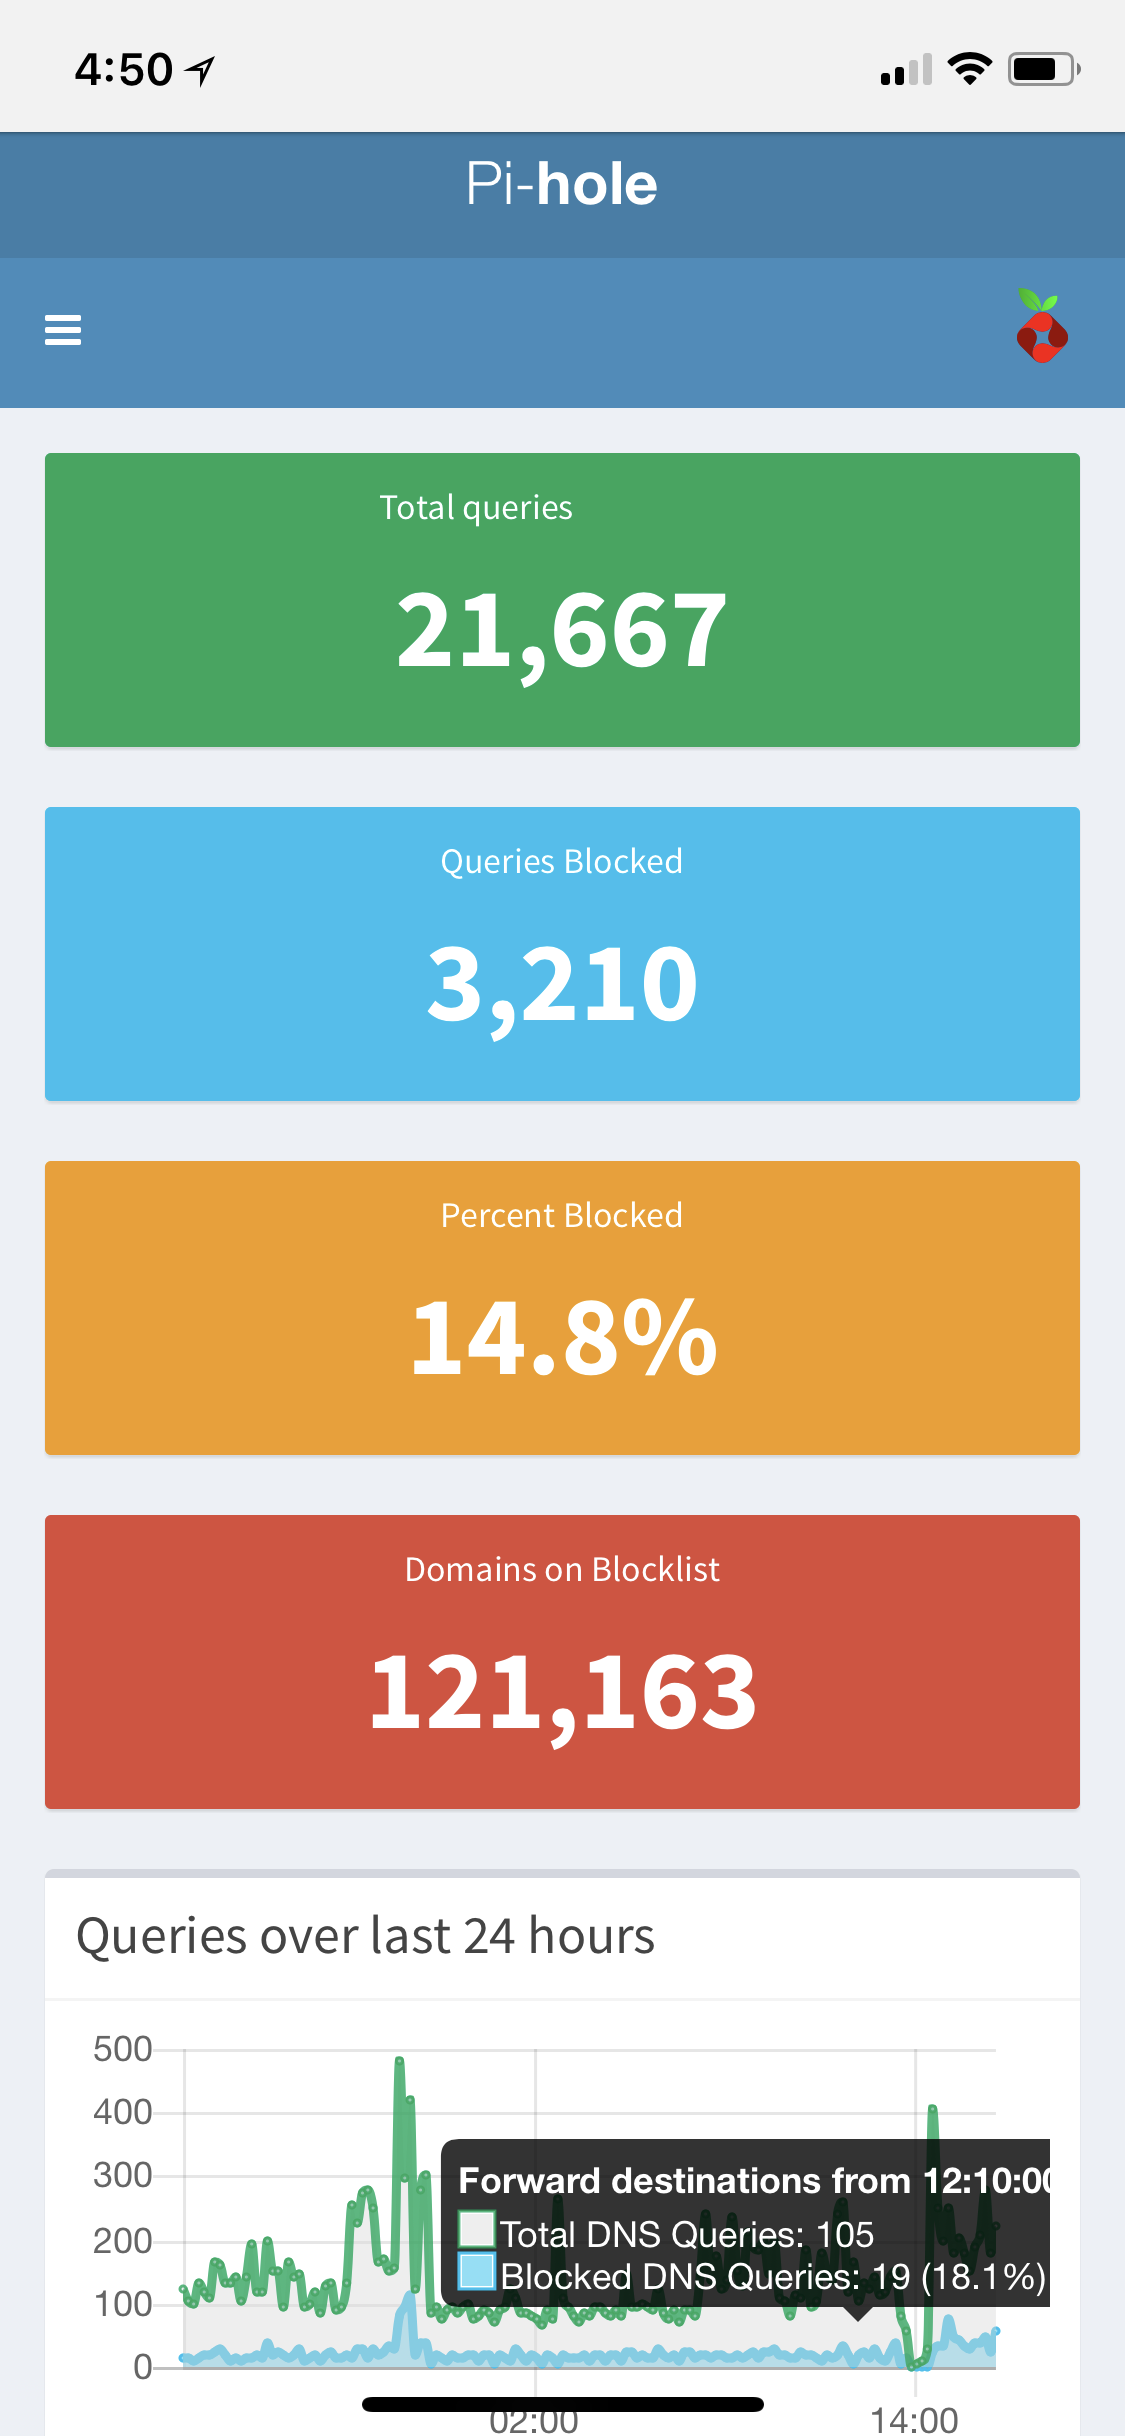 PiHole – Stopping Advertisements | Busy Signal